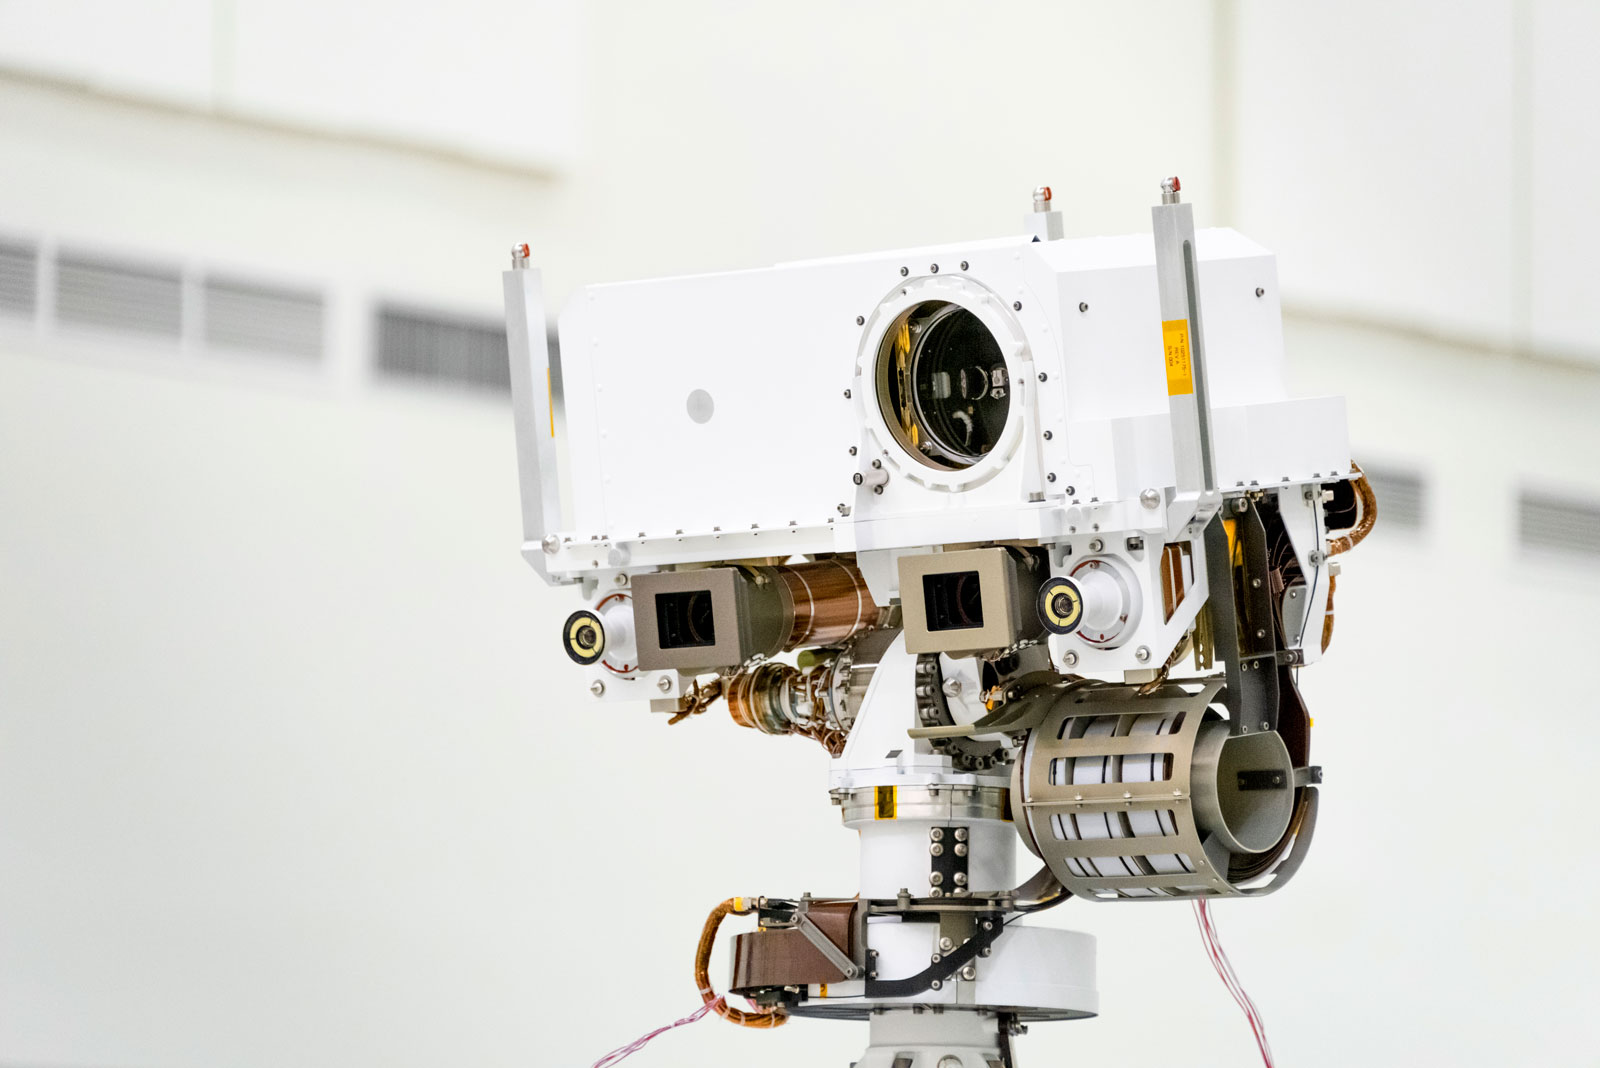 All About the Laser and Microphone Atop Mars 2020